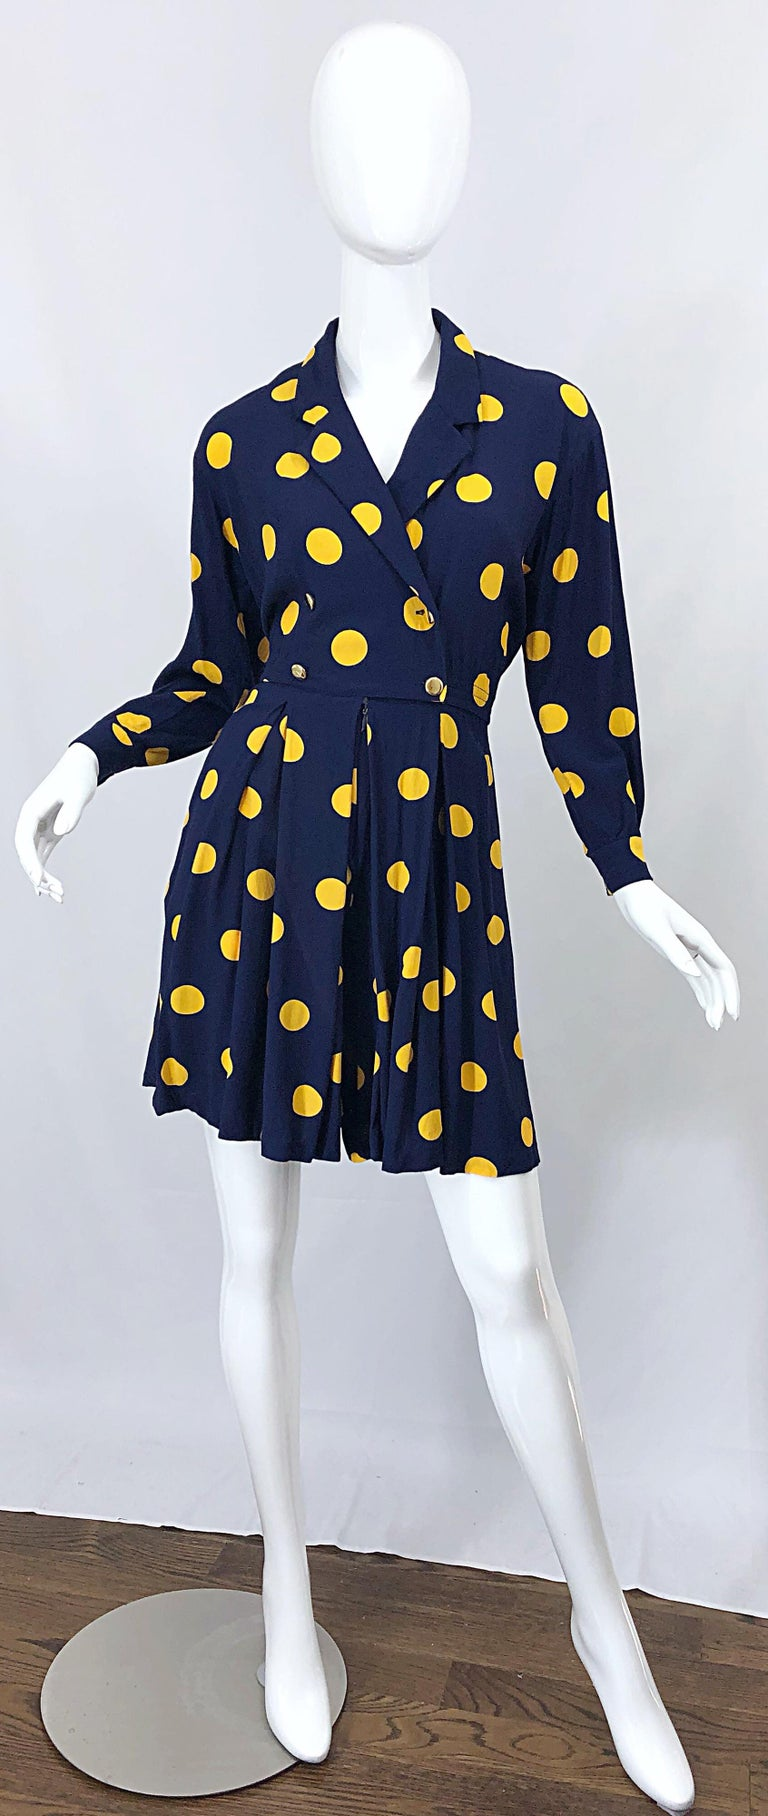 Women's Size 8 Romper Late 1980s Navy Blue and Yellow Polka Dot 80s Vintage Romper For Sale